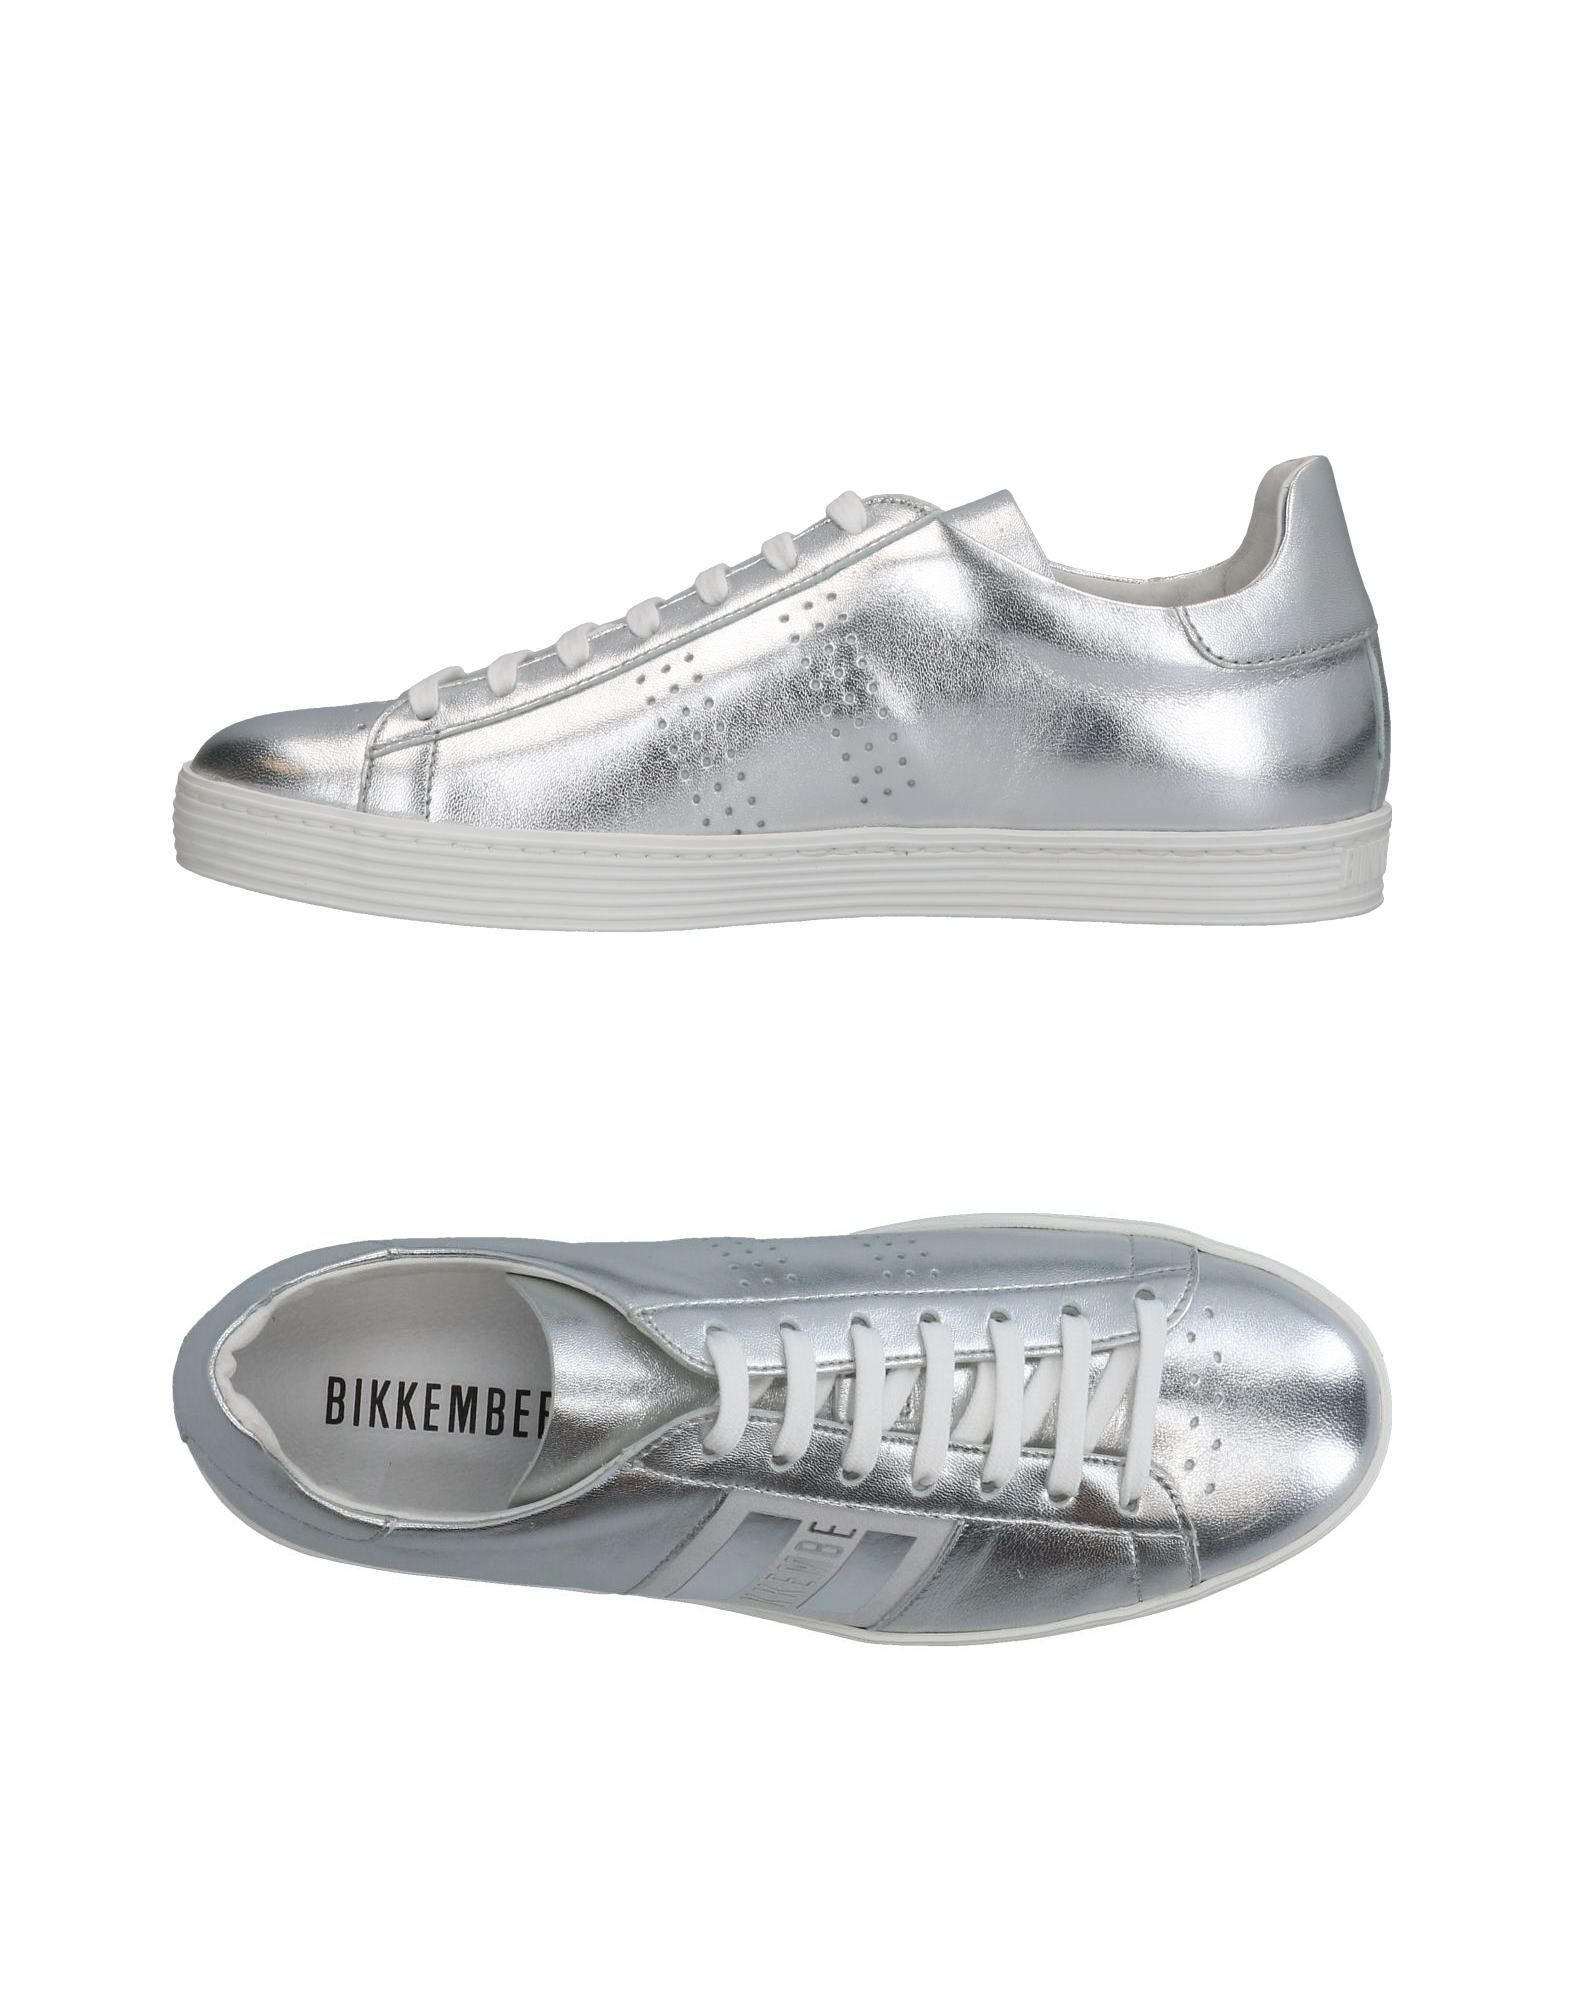 A buon mercato Sneakers Bikkembergs Donna - 11327053NH